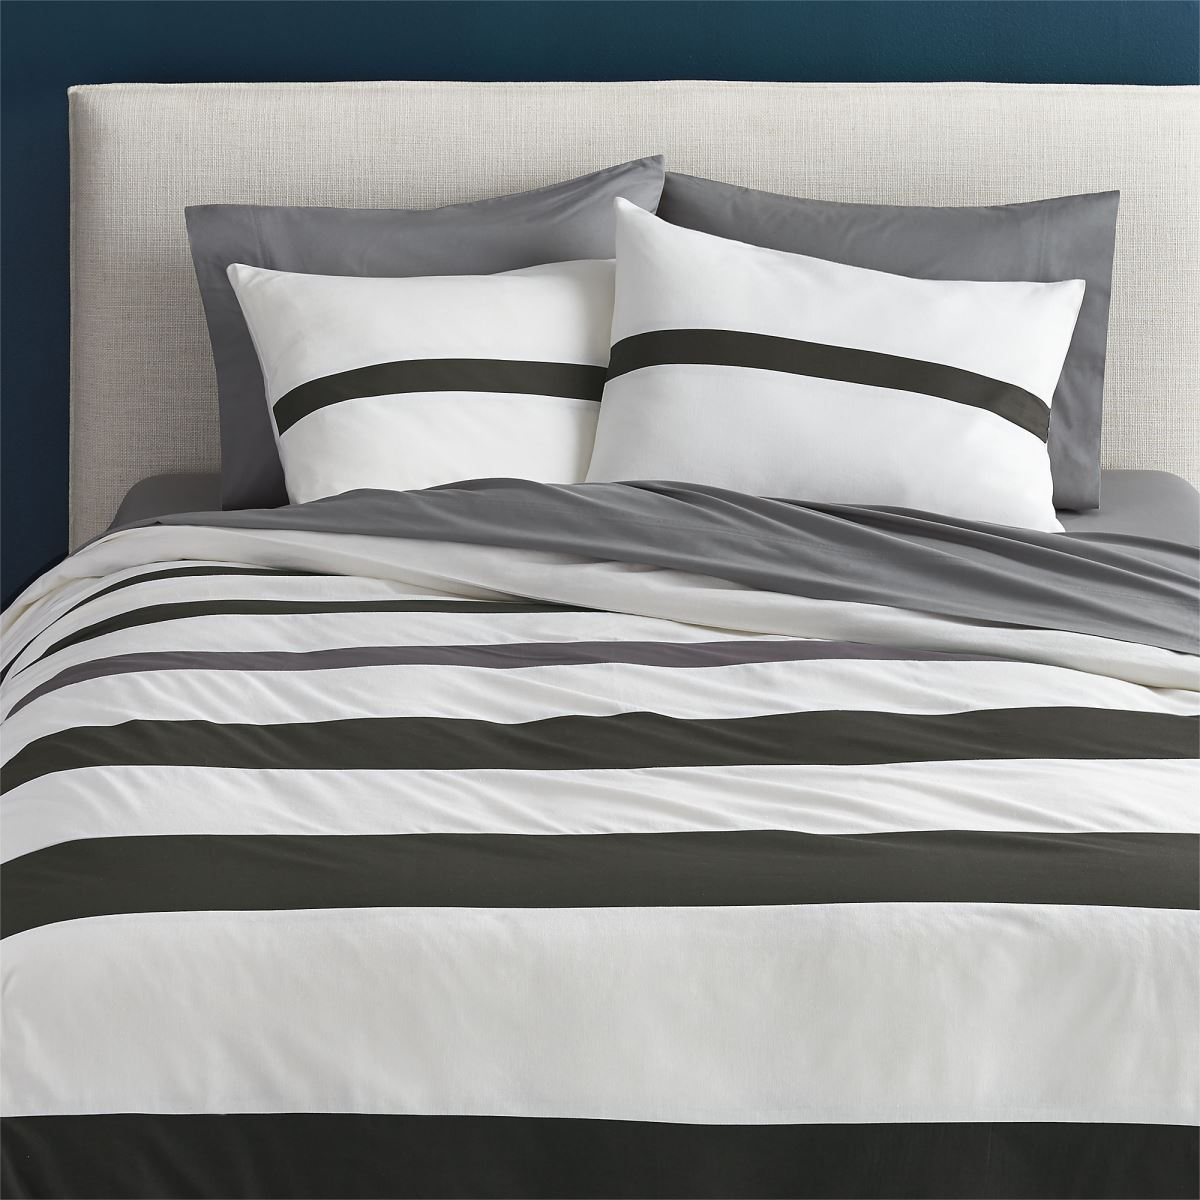 Comfy bedding makes a big difference